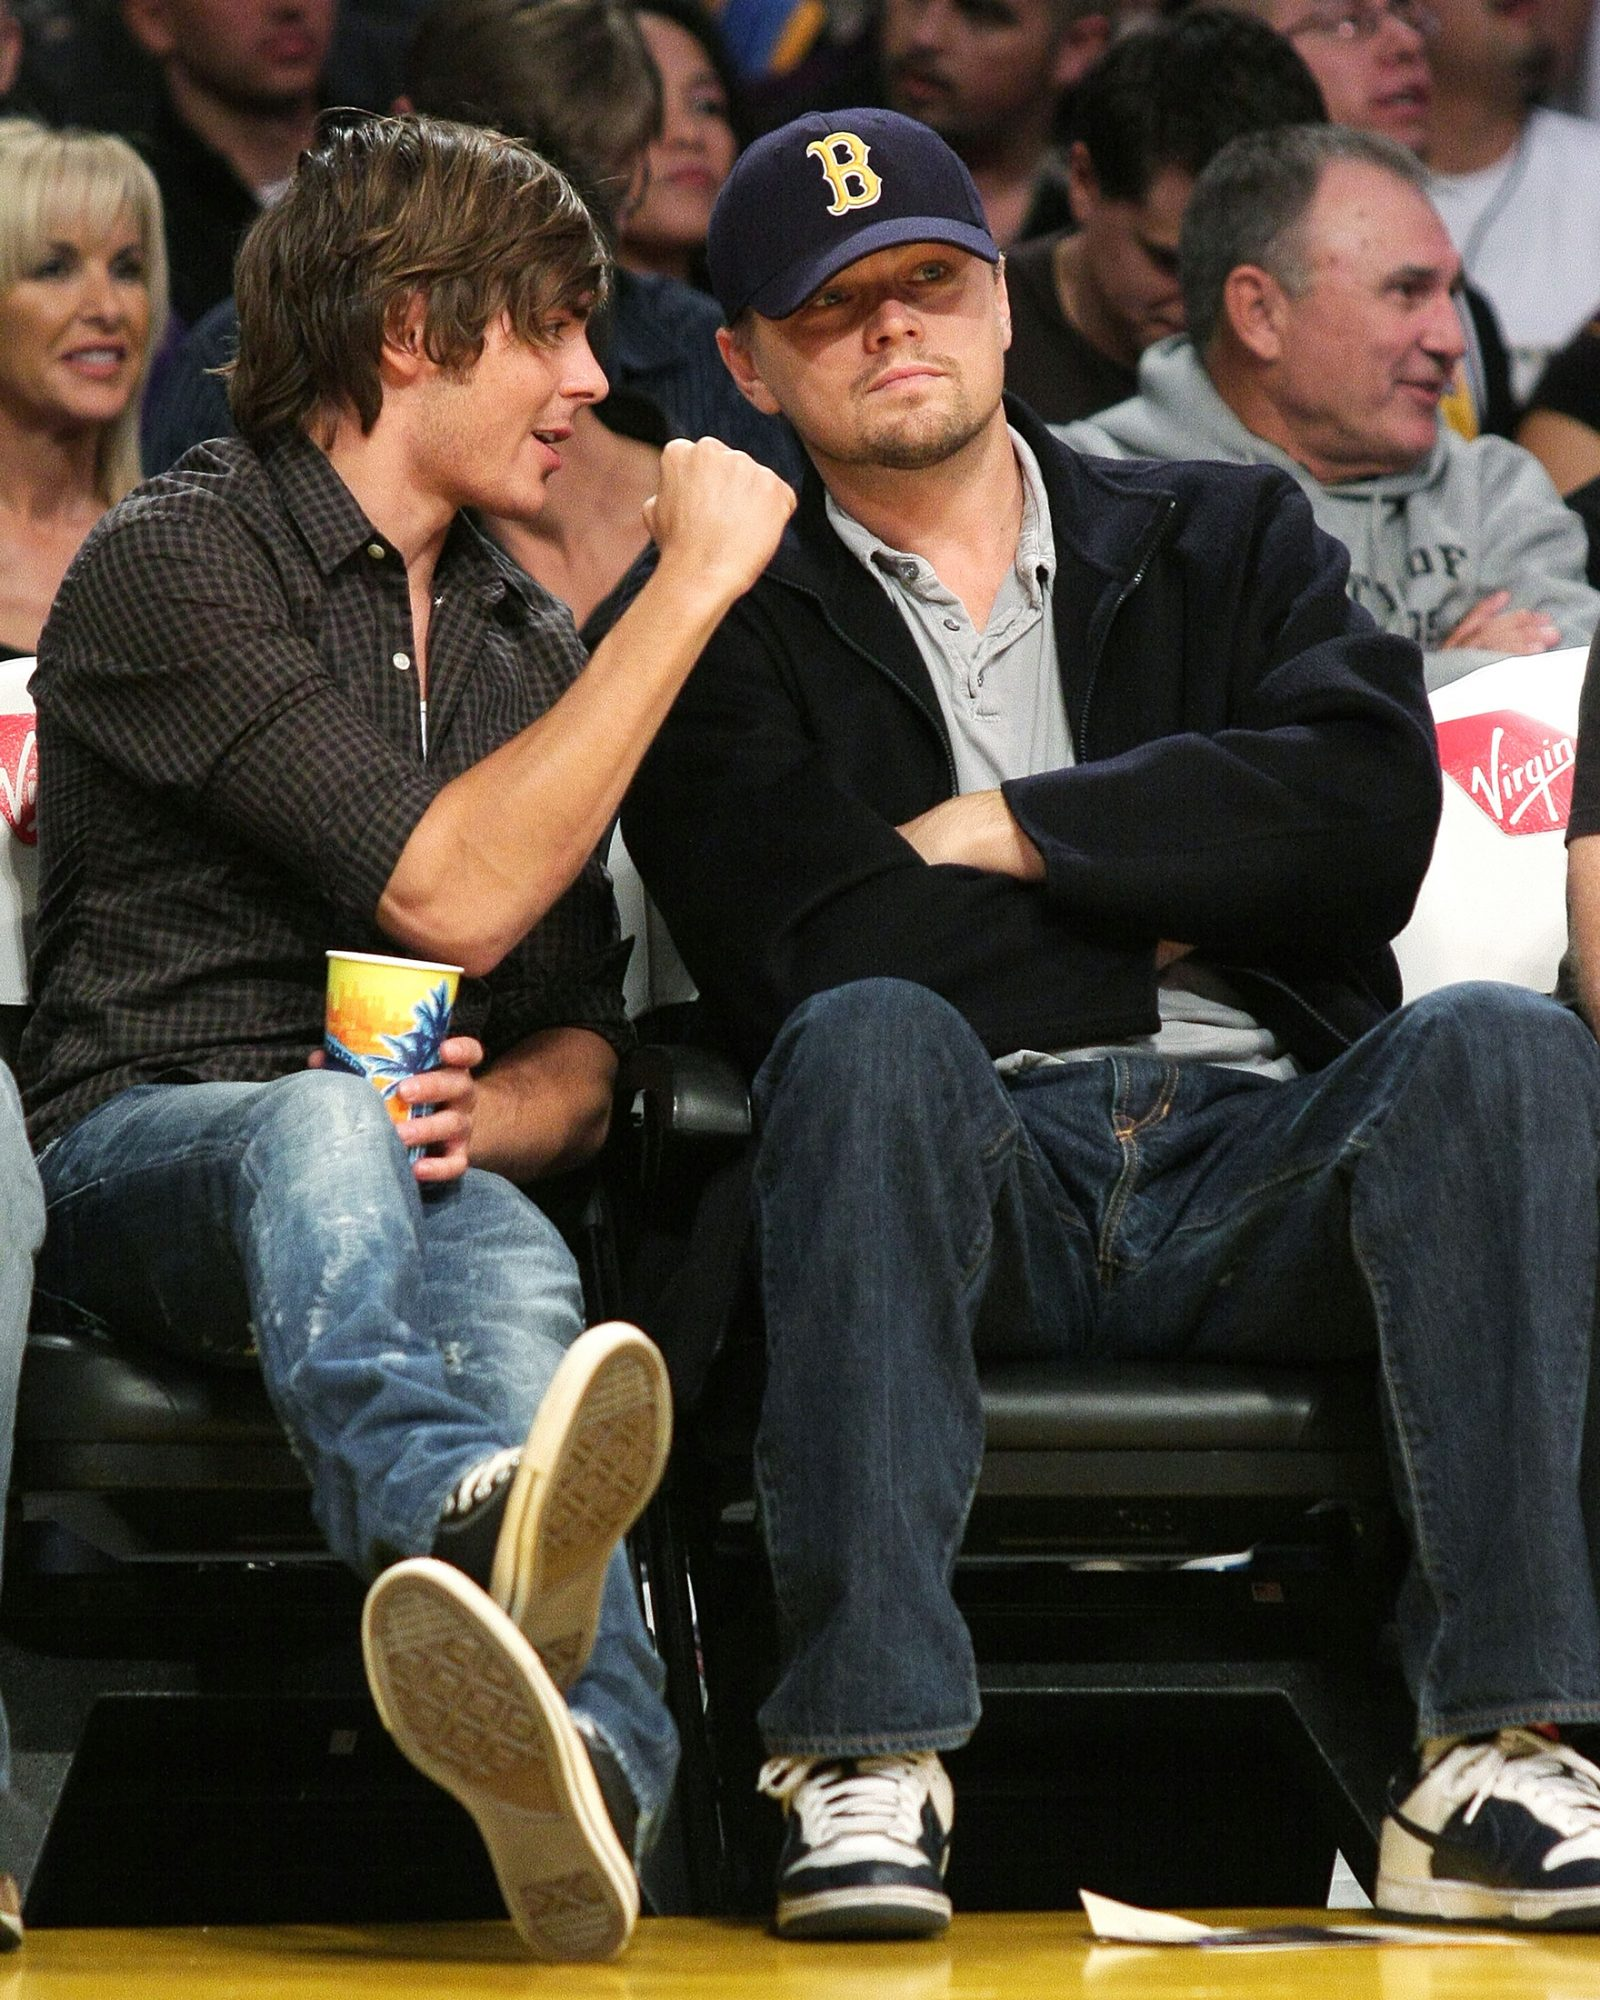 And he has acted as a mentor to Zac Efron.